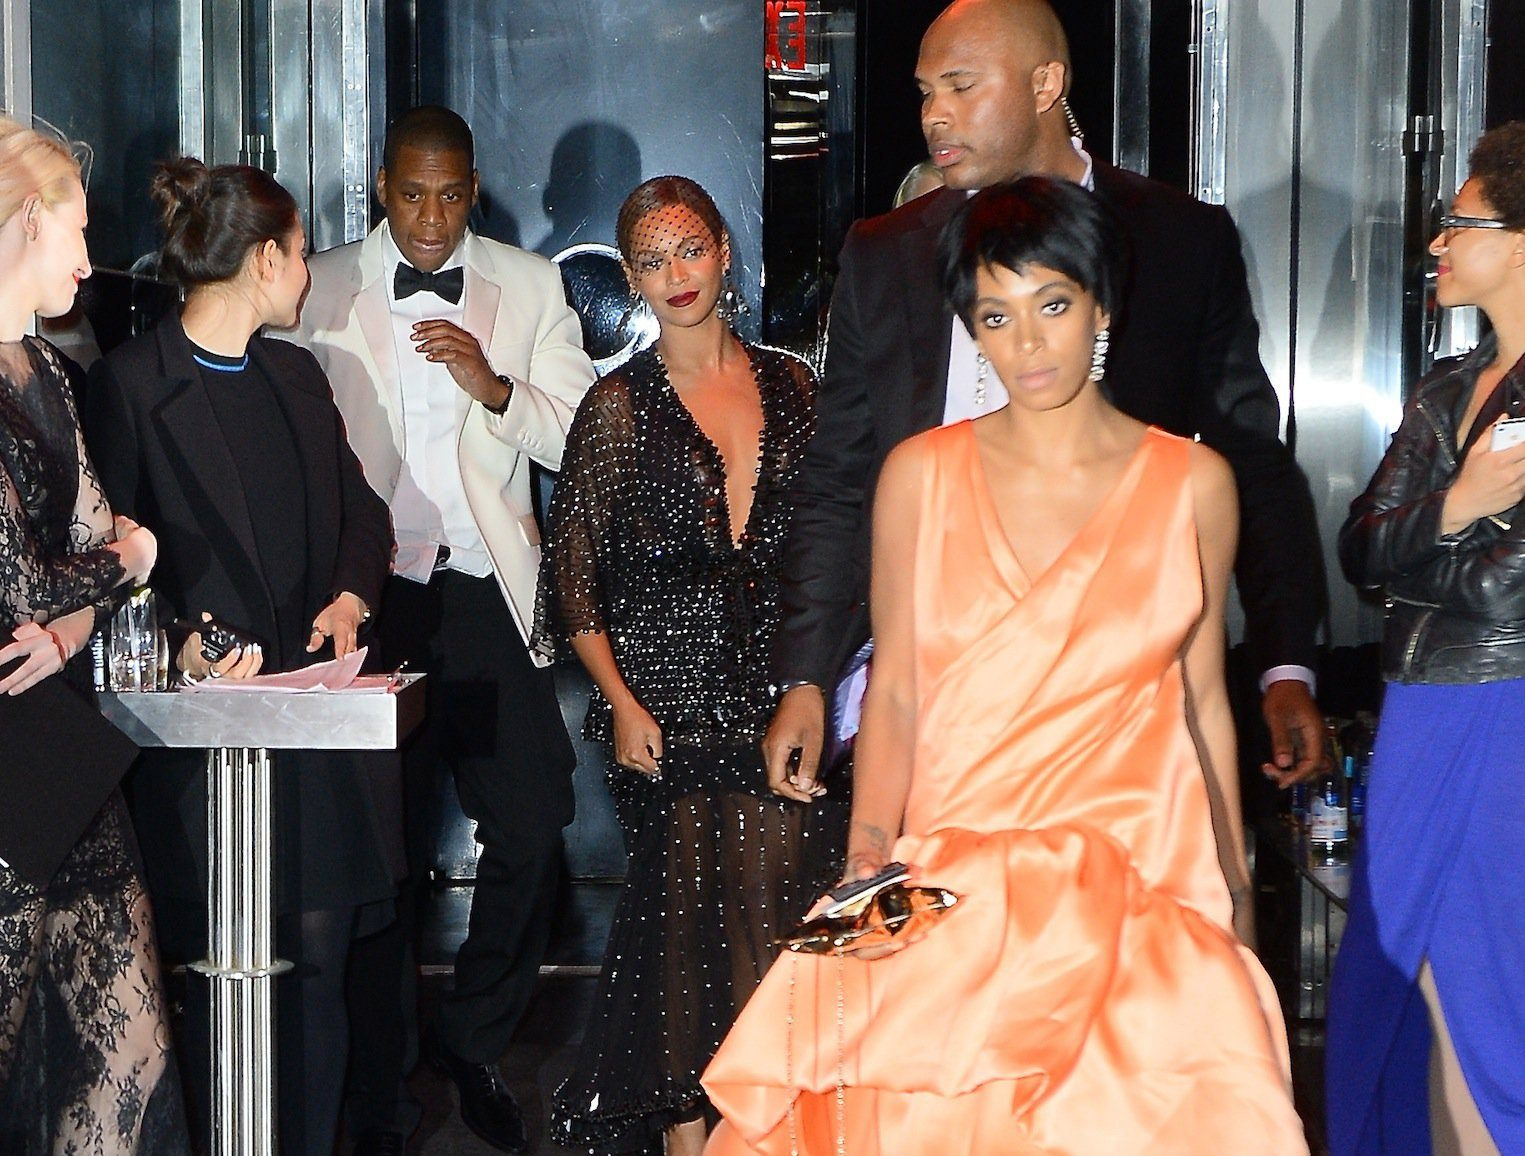 Beyonce's dad Mathew Knowles savagely admits he 'laughed so hard' at Solange and Jay-Z elevator fight